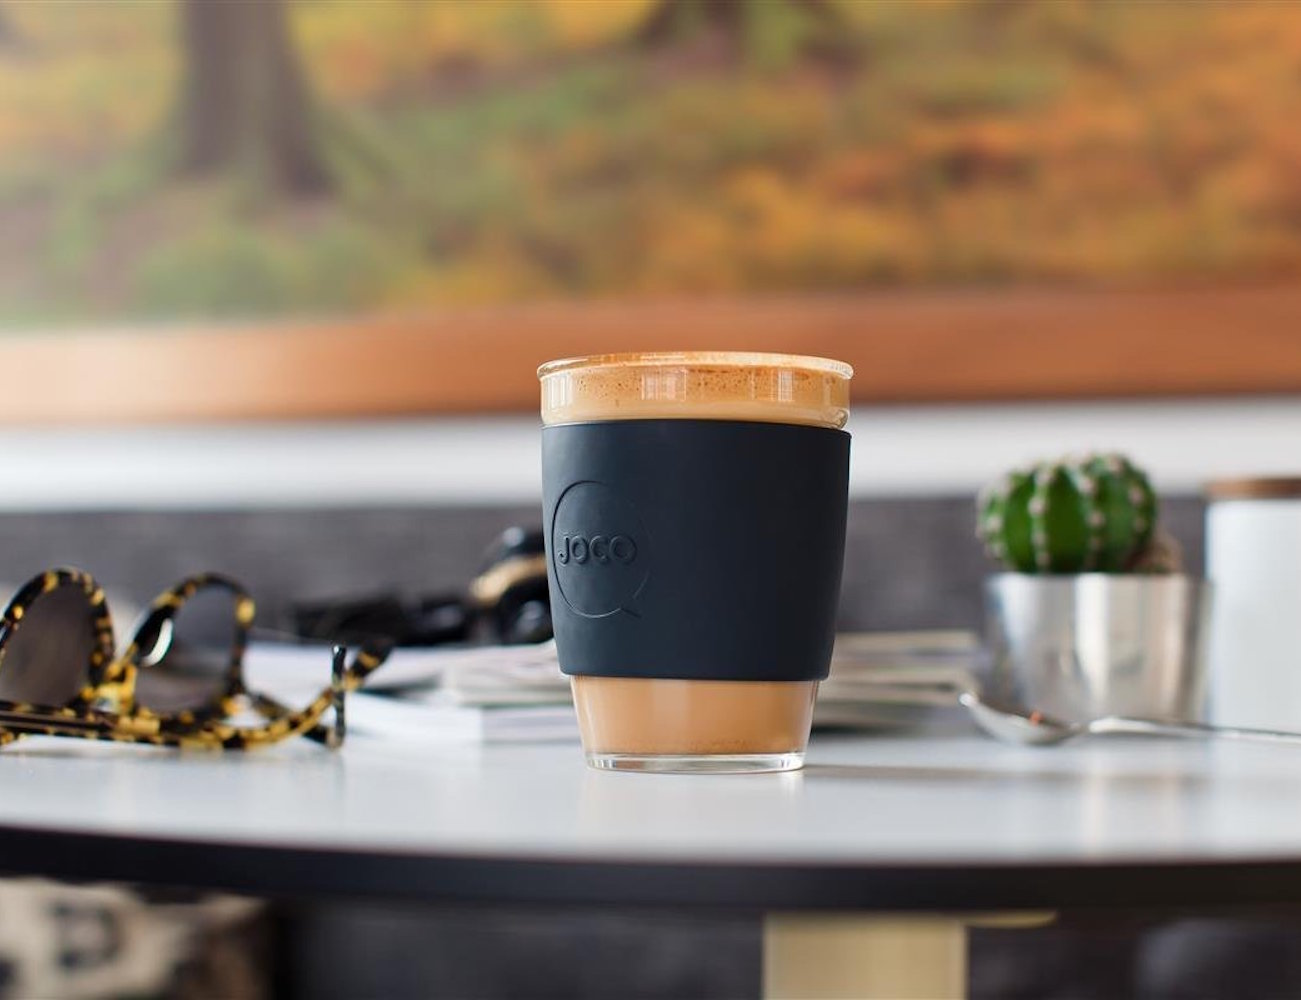 JOCO Glass – Reusable 12oz Coffee Cup